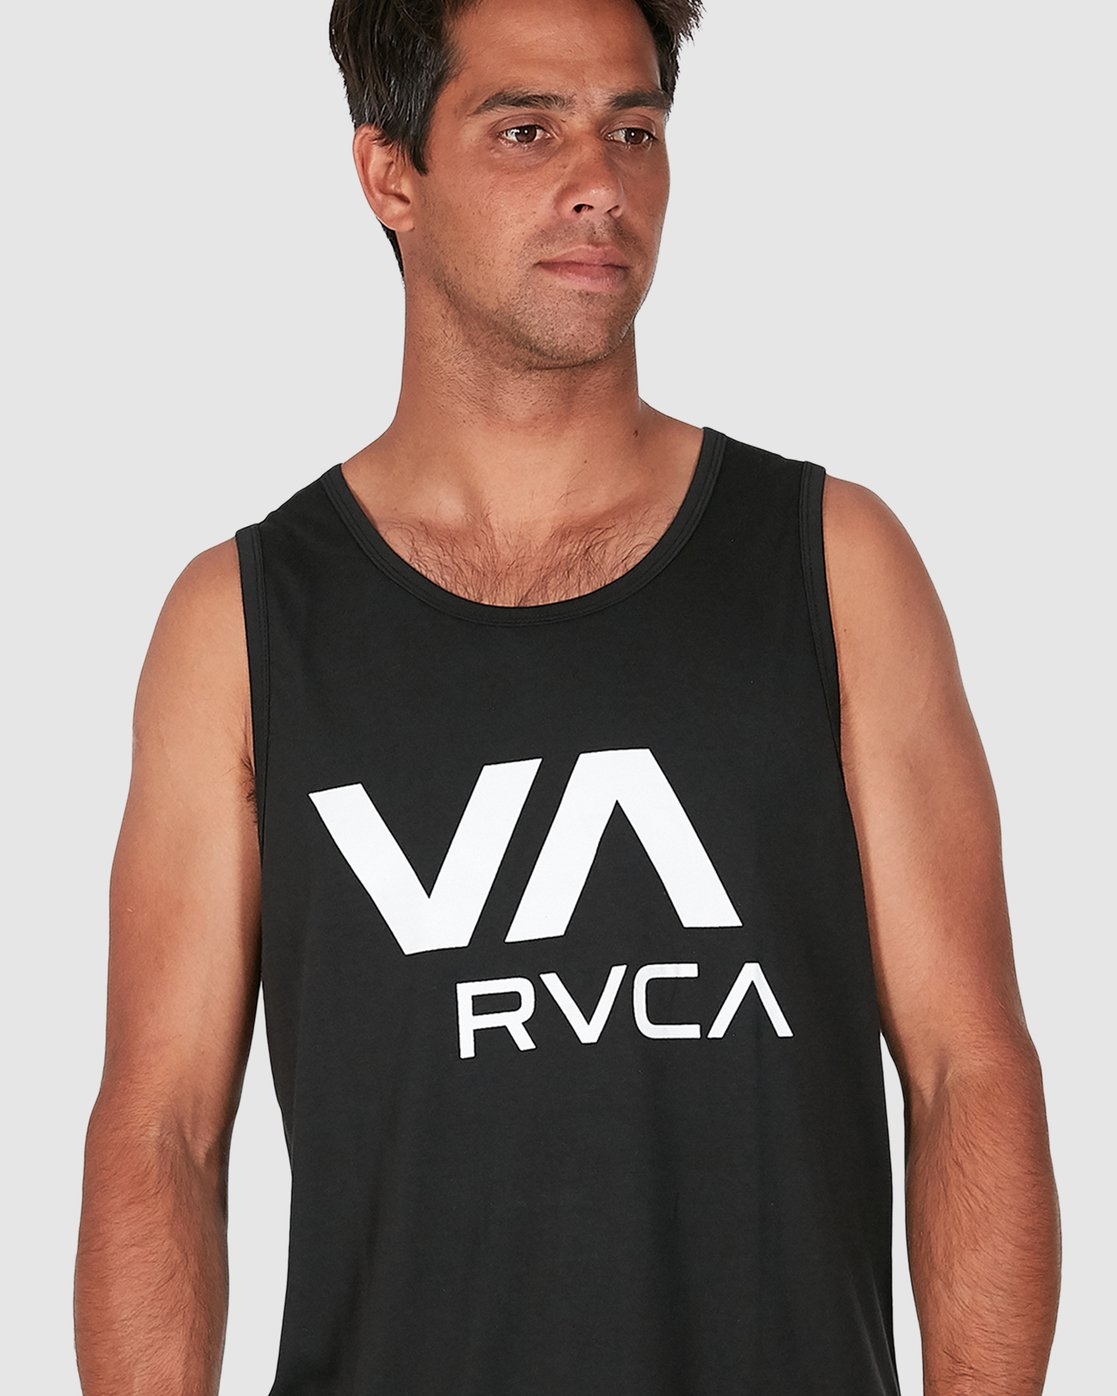 4 Va Rvca Tank Top Black R305007 RVCA